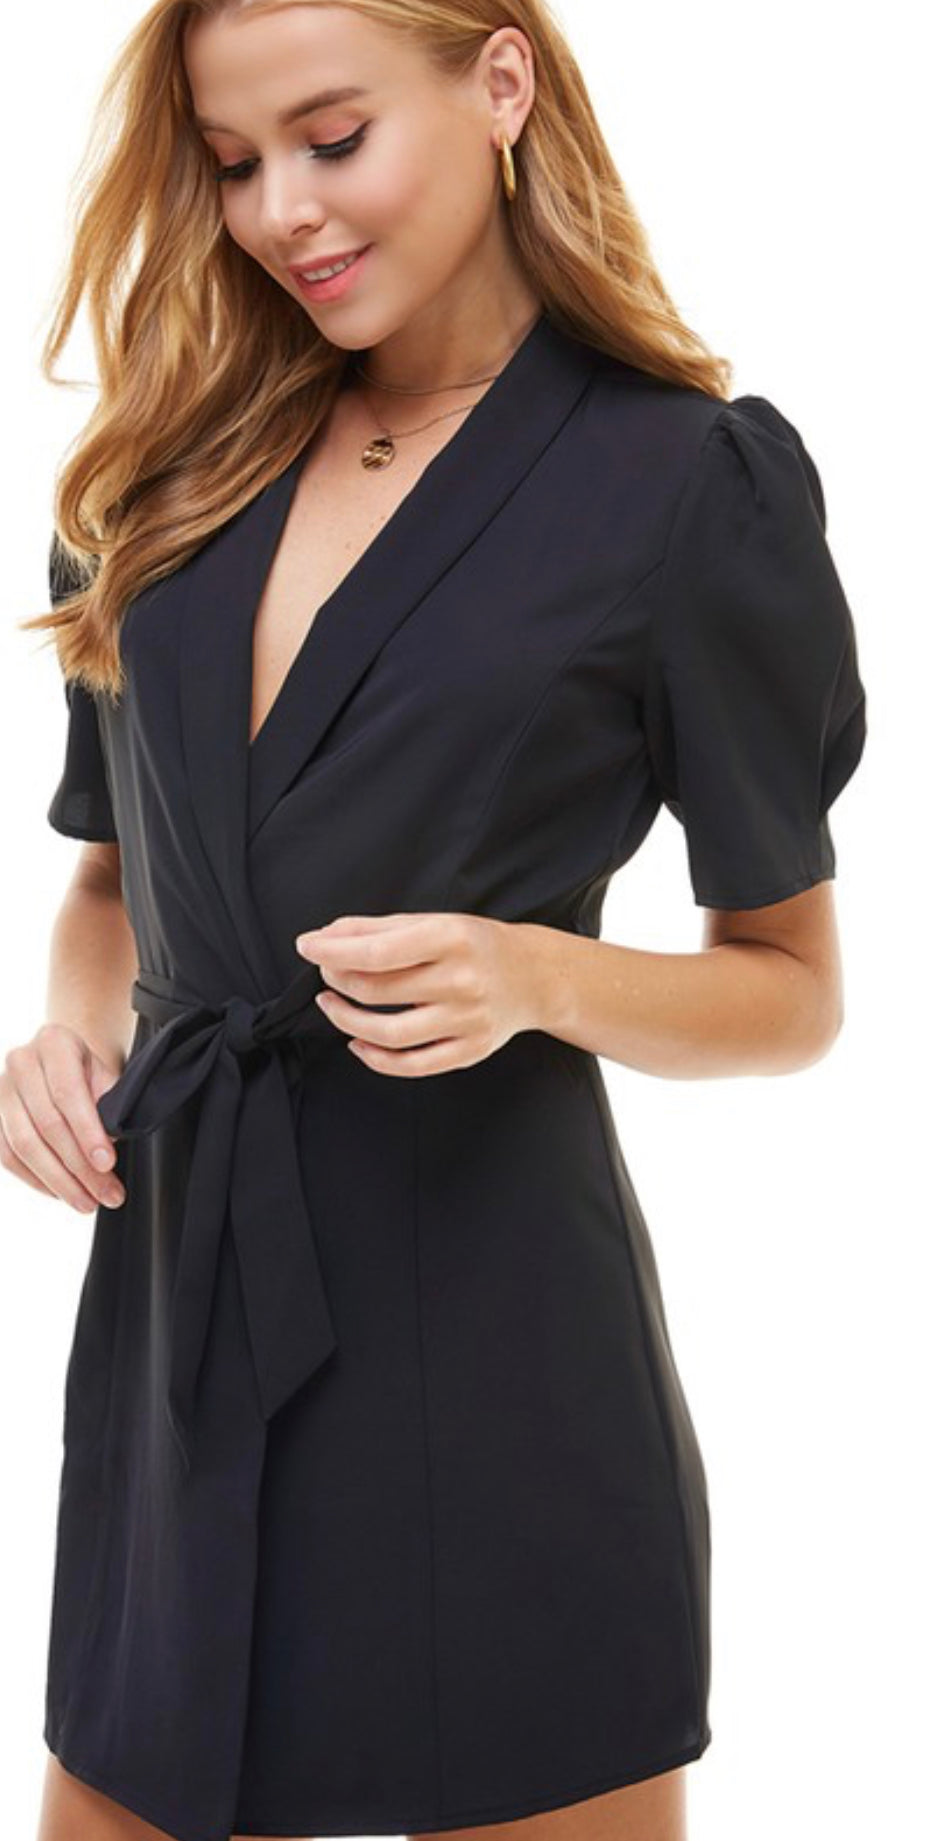 BLACK PUFF SHORT SLEEVE BLAZER DRESS